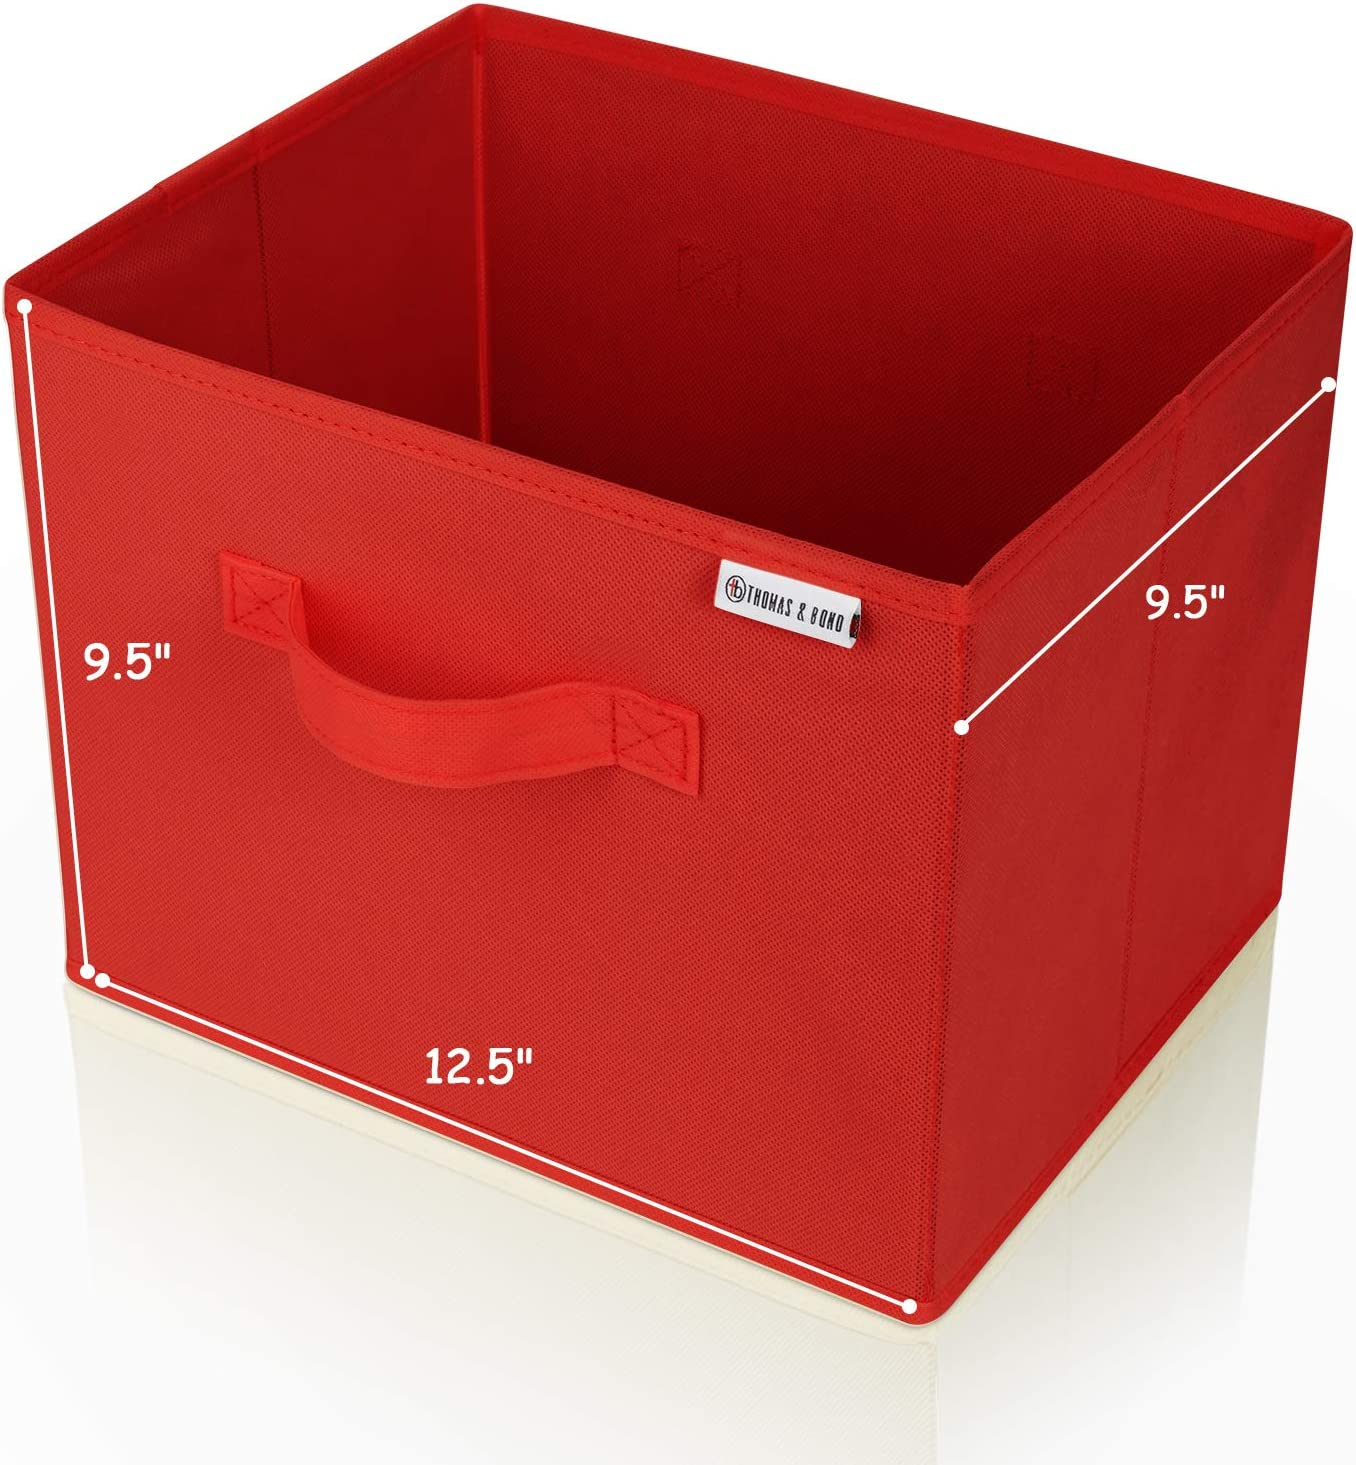 Collapsible File Storage Box 12.5 x 9.5 x 9.5 Holds Hanging File Folders and Letter Size Files. Fits on Shelf or in Many Drawers. (Cherry Red)